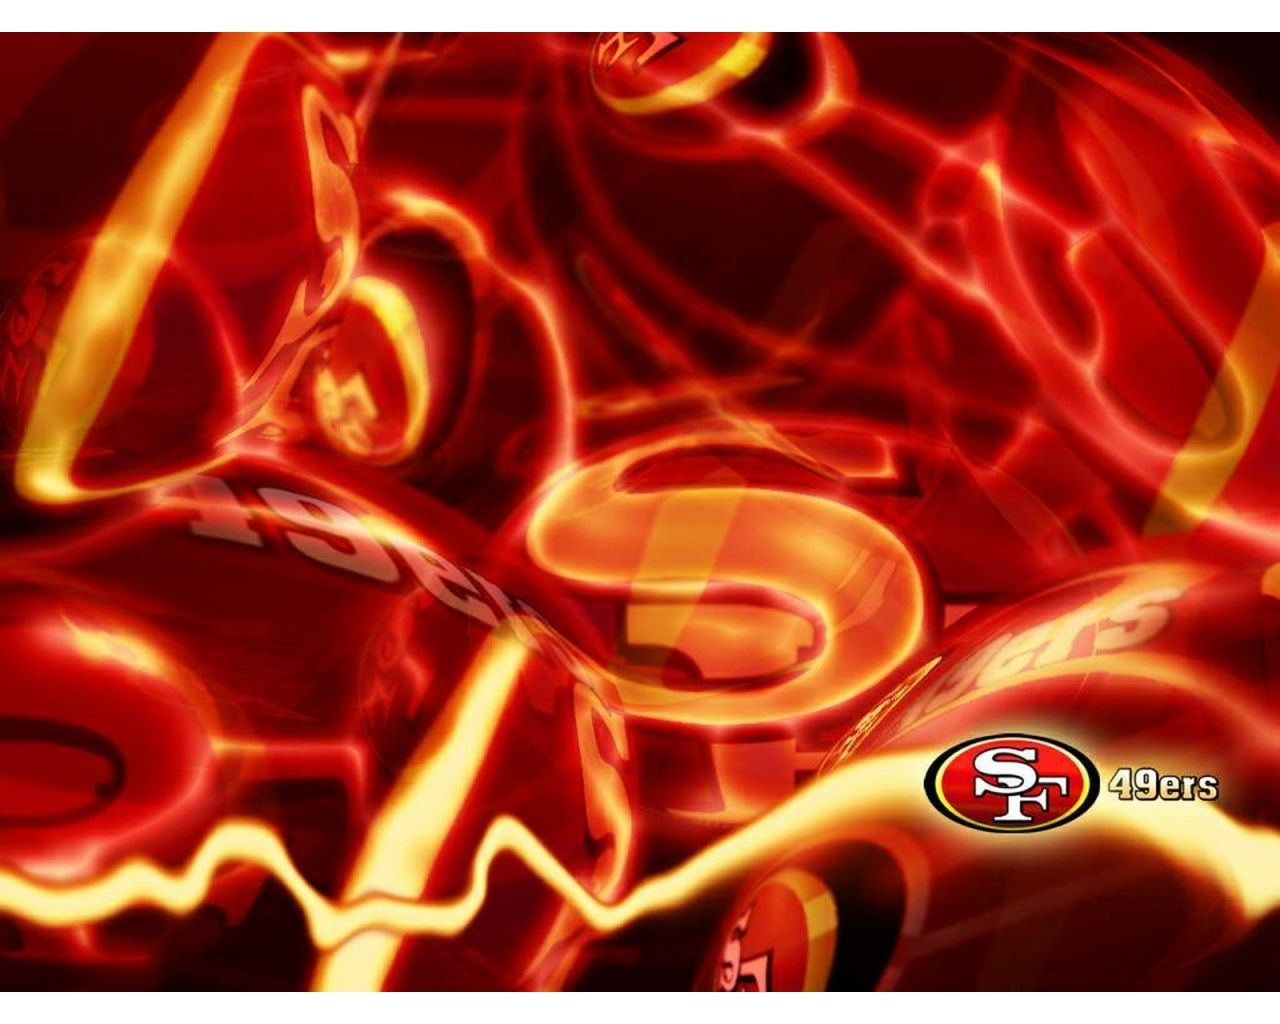 49ers pictures download hd wallpapers | San Francisco 49ers Wallpapers in 1280x1024 Resolution